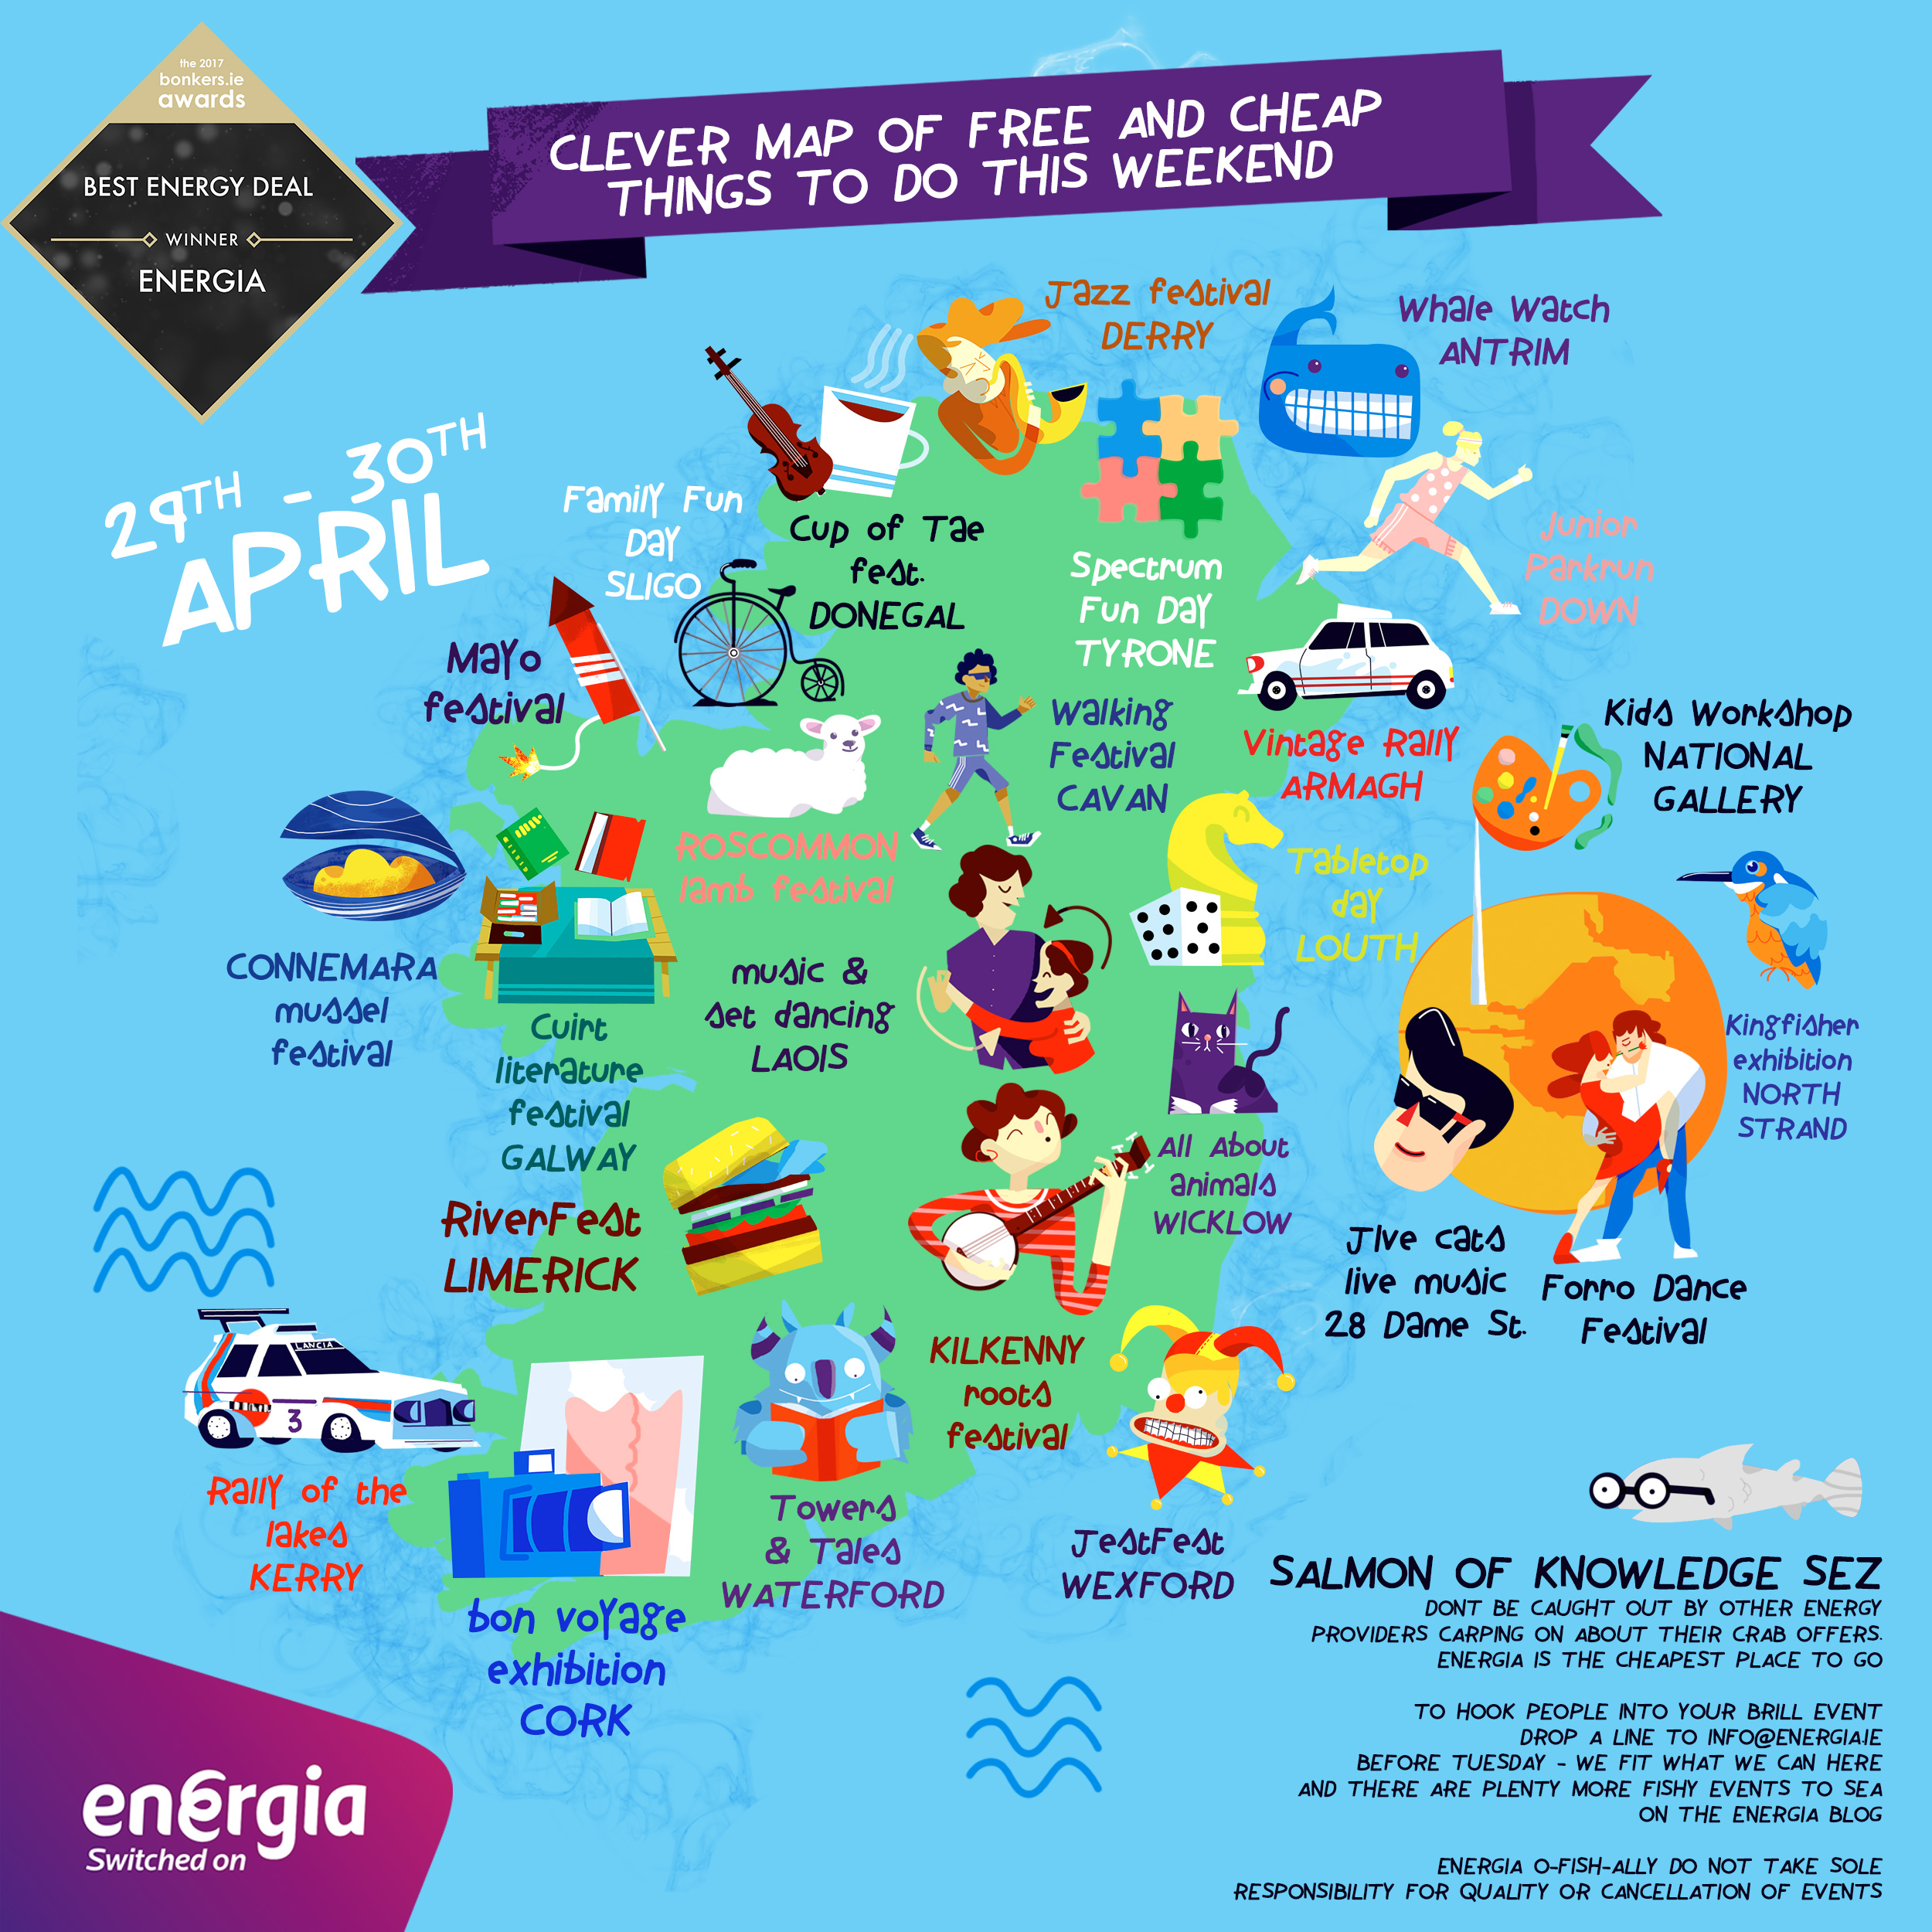 Clever Map of Cheap and Free Things To Do This Weekend 29-30th April